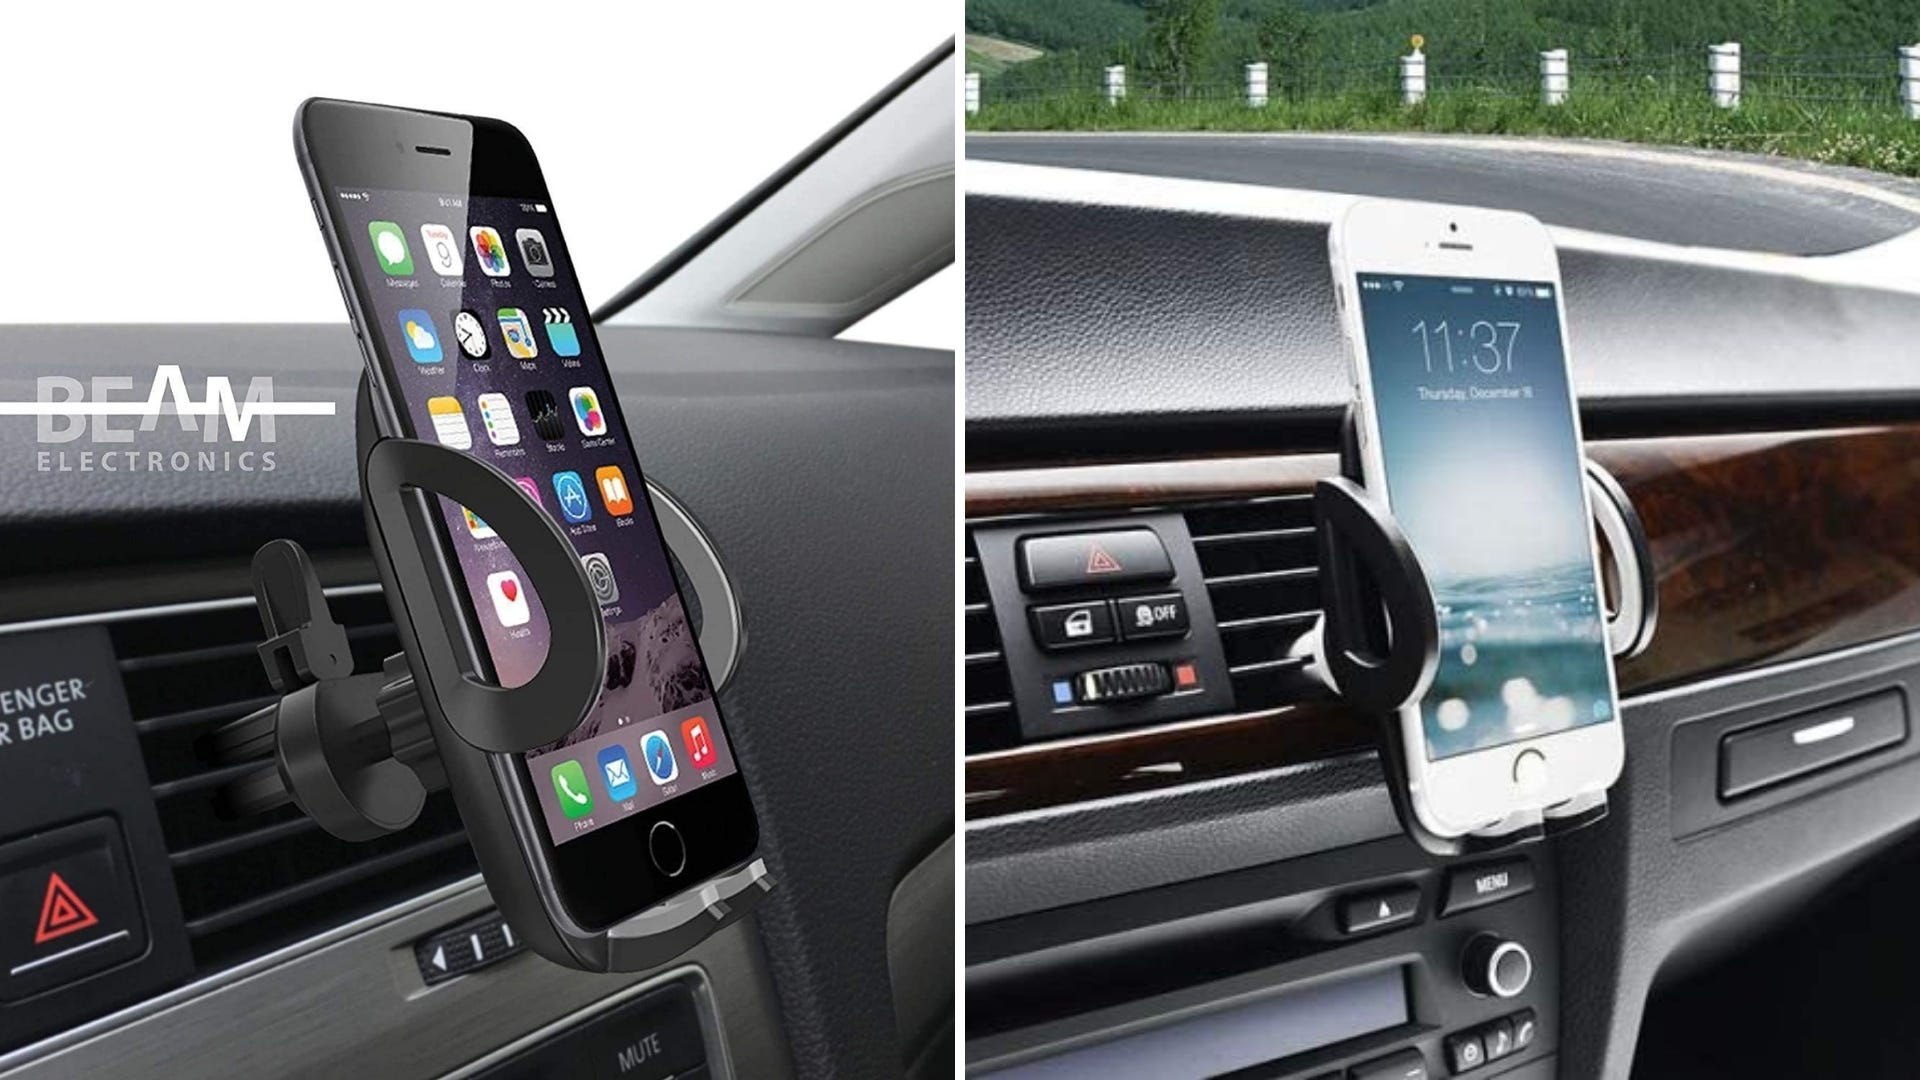 Smartphone holder secured in air vent of a car